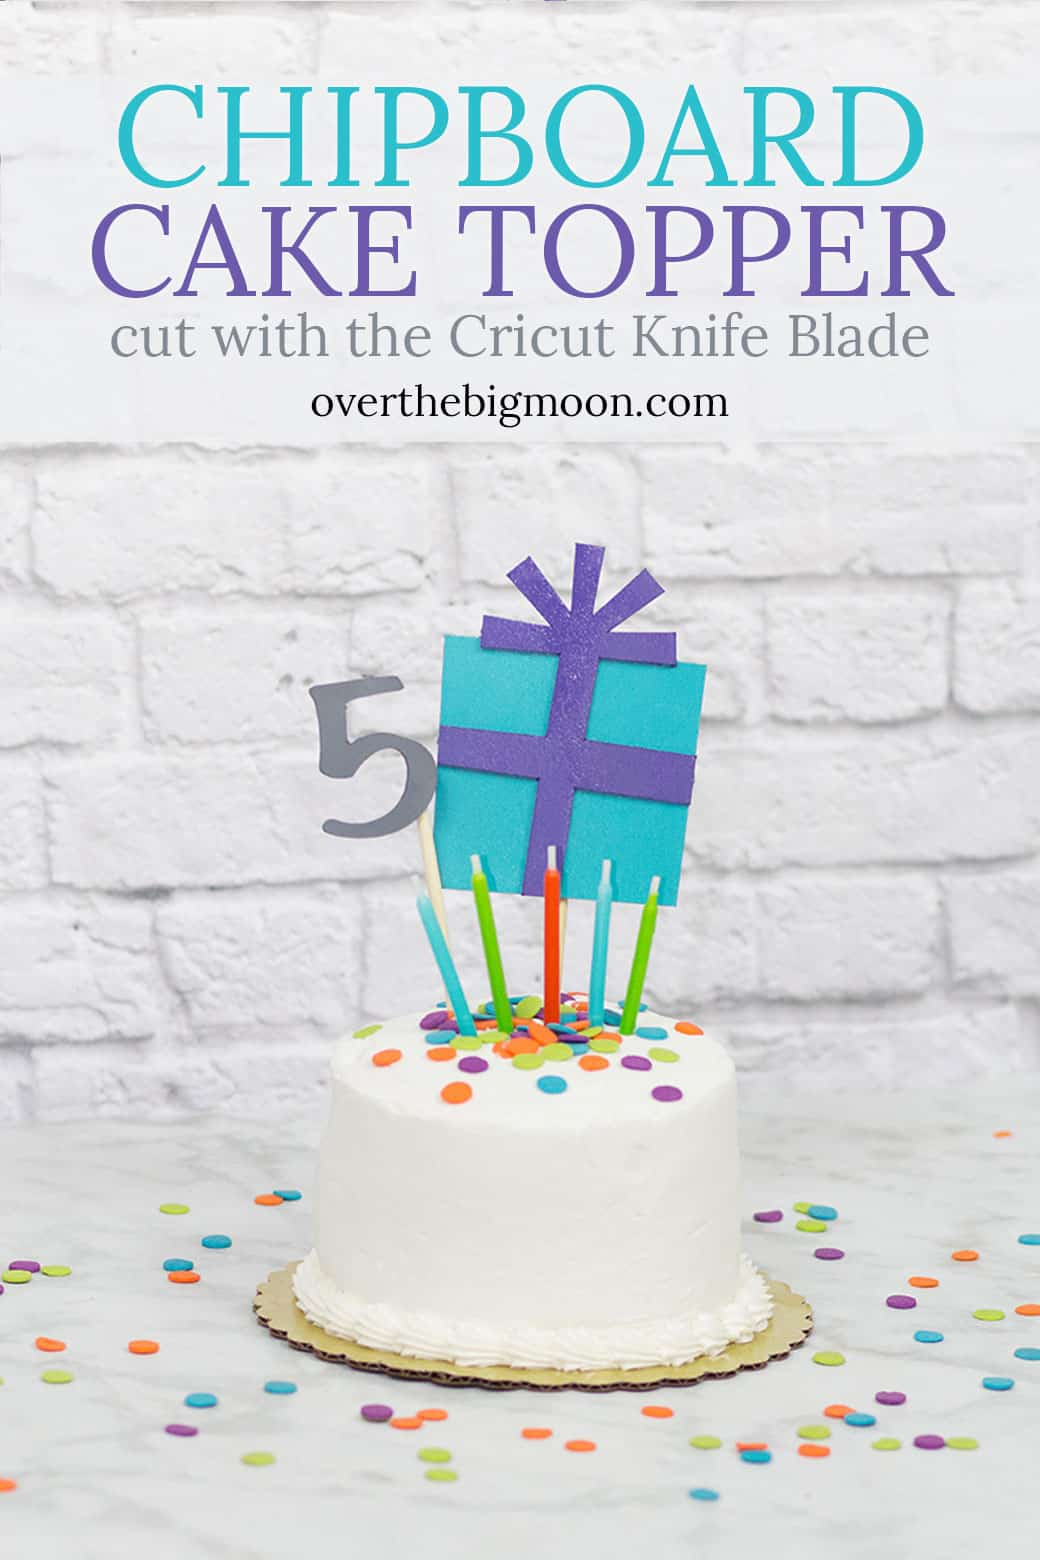 A DIY Chipboard Cake Topper made with the Cricut Maker and Cricut Knife Blade! From overthebigmoon.com!